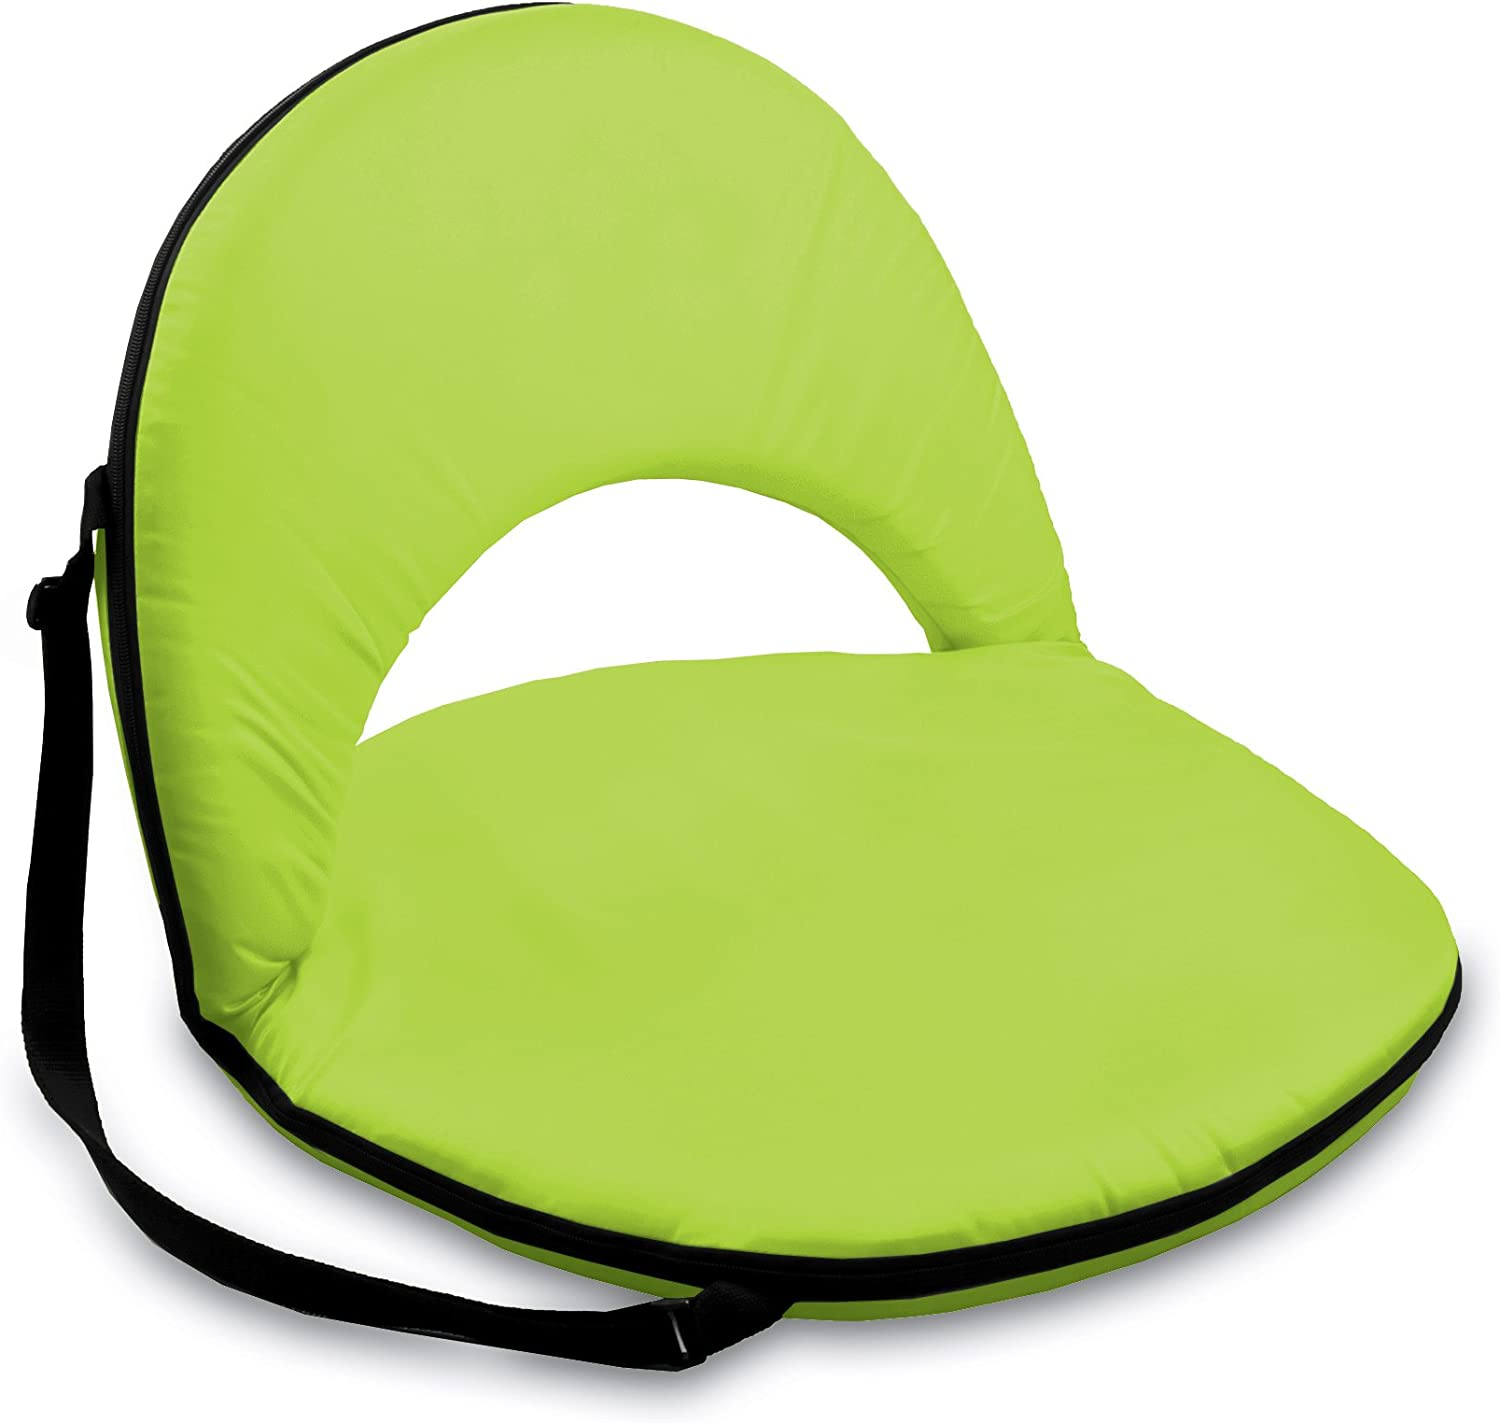 ONIVA - a Picnic Time Brand Oniva Portable Reclining Seat, Lime